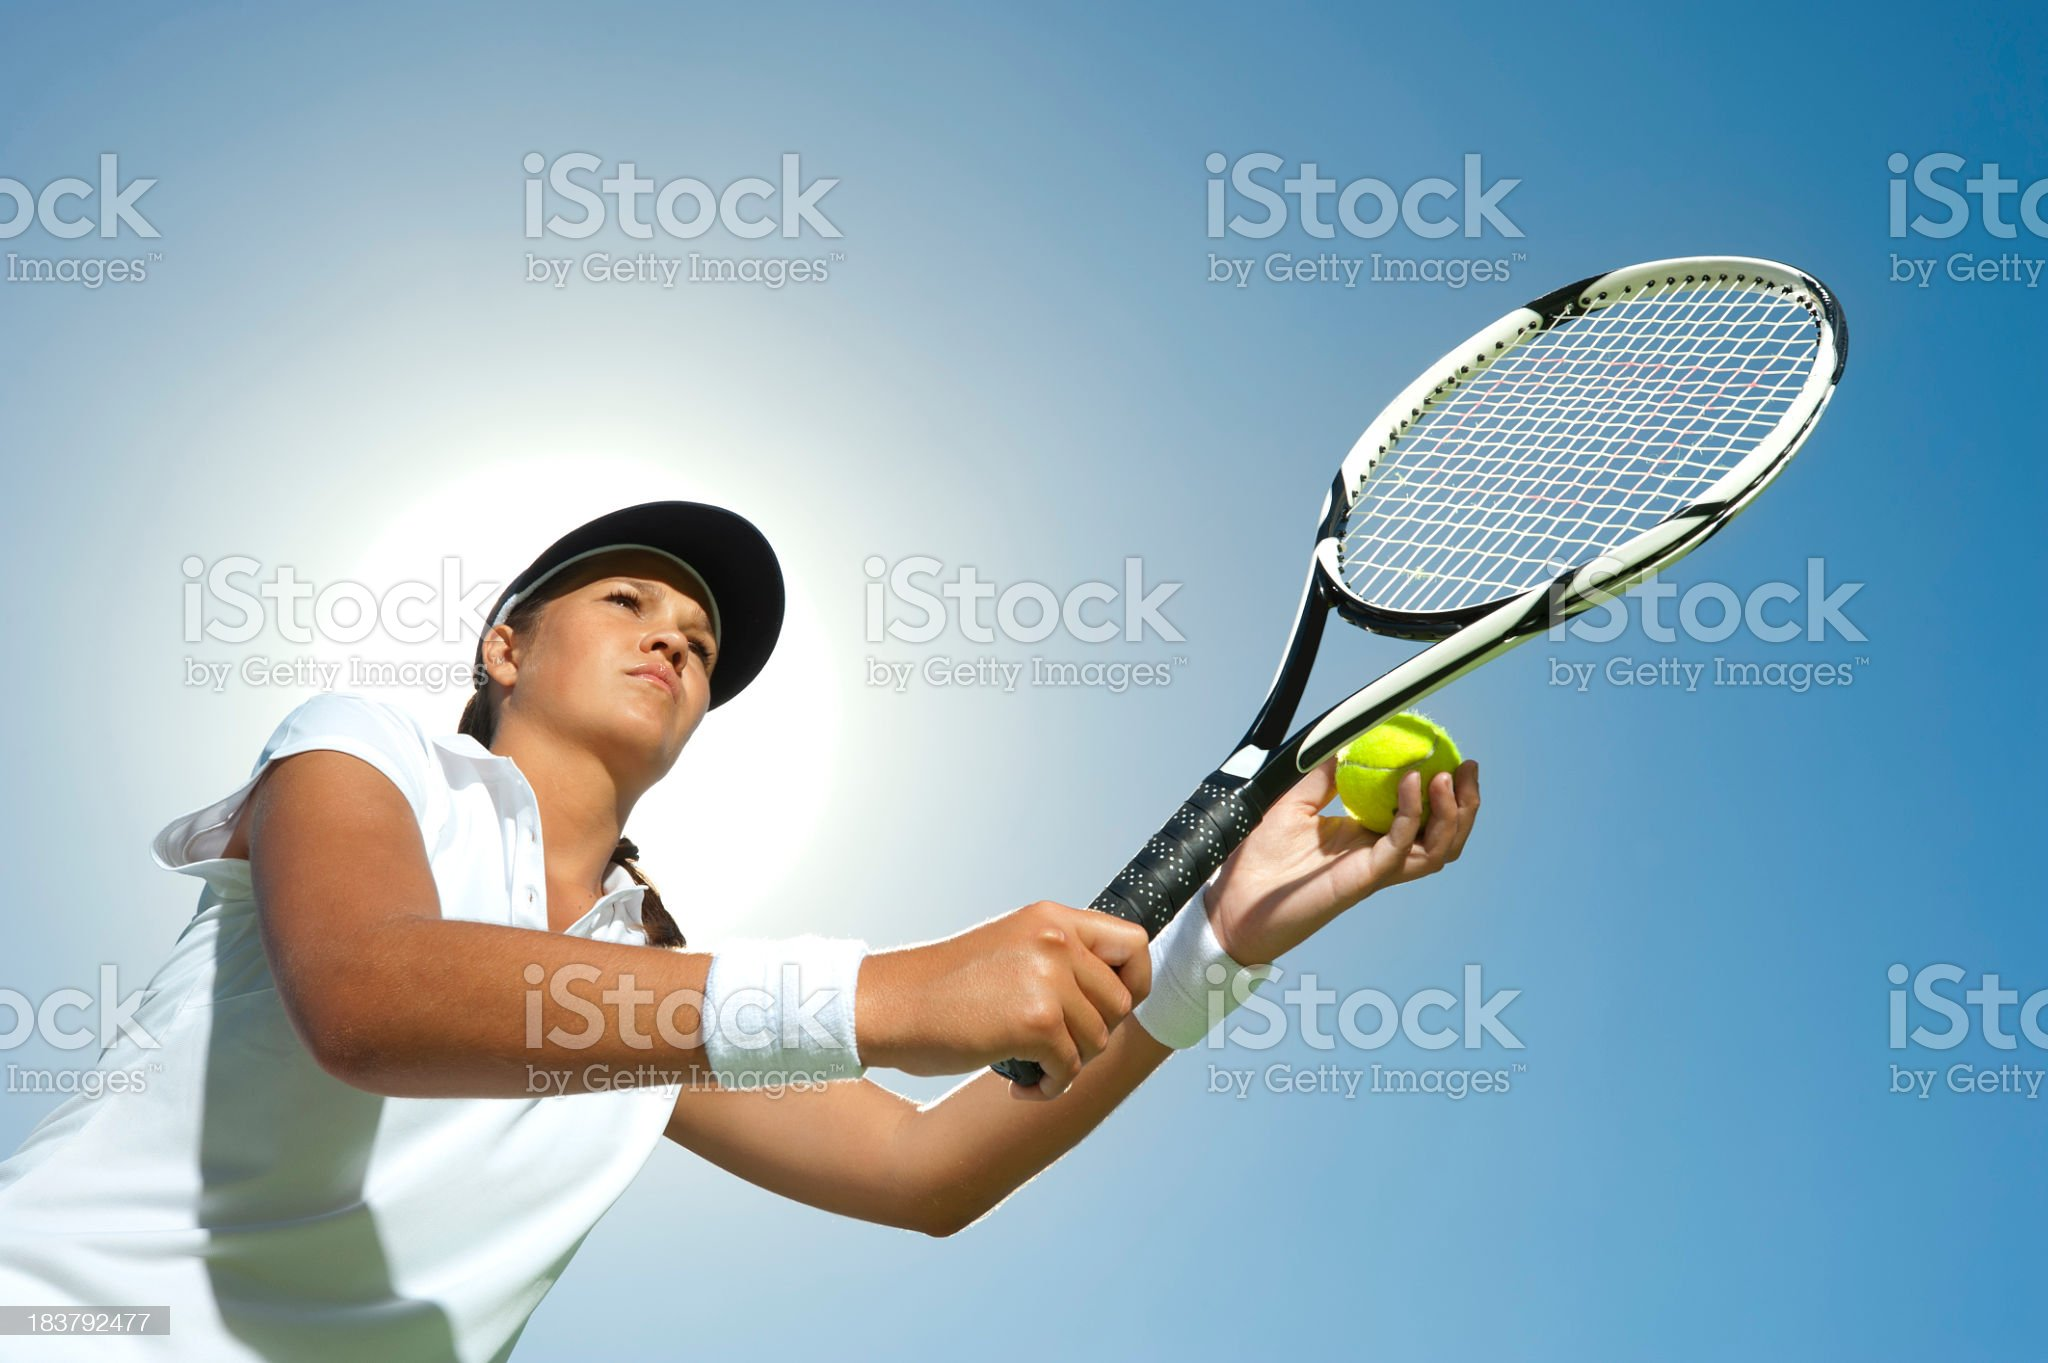 Woman holding a tennis racquet ready to serve royalty-free stock photo